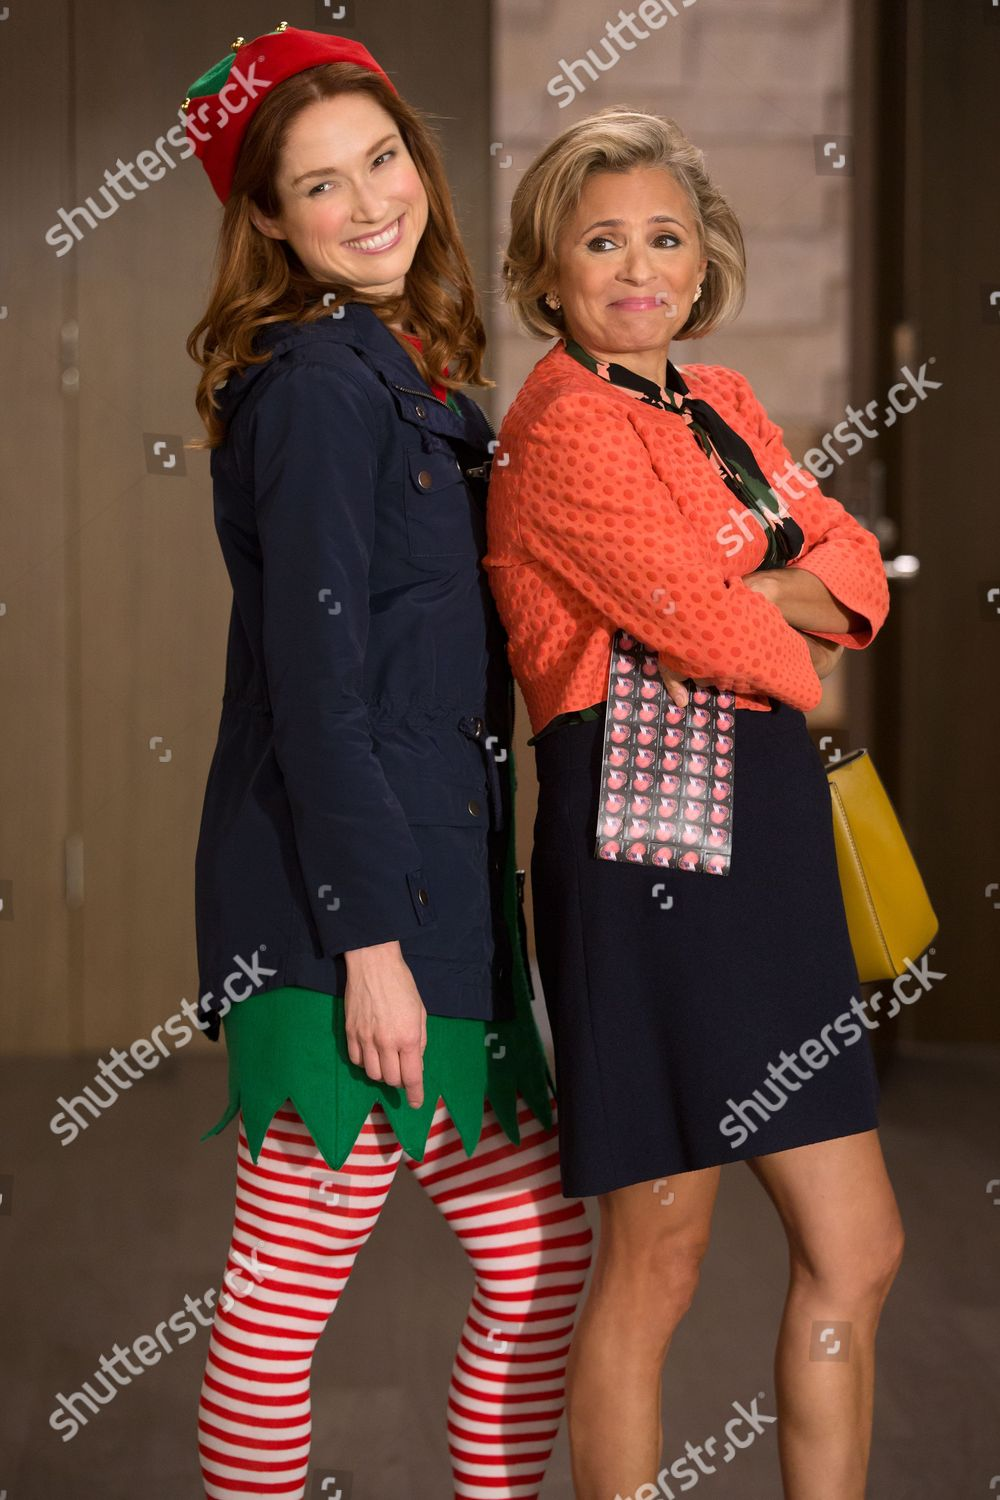 Amy Sedaris Kimmy Schmidt ellie kemper amy sedaris editorial stock photo - stock image